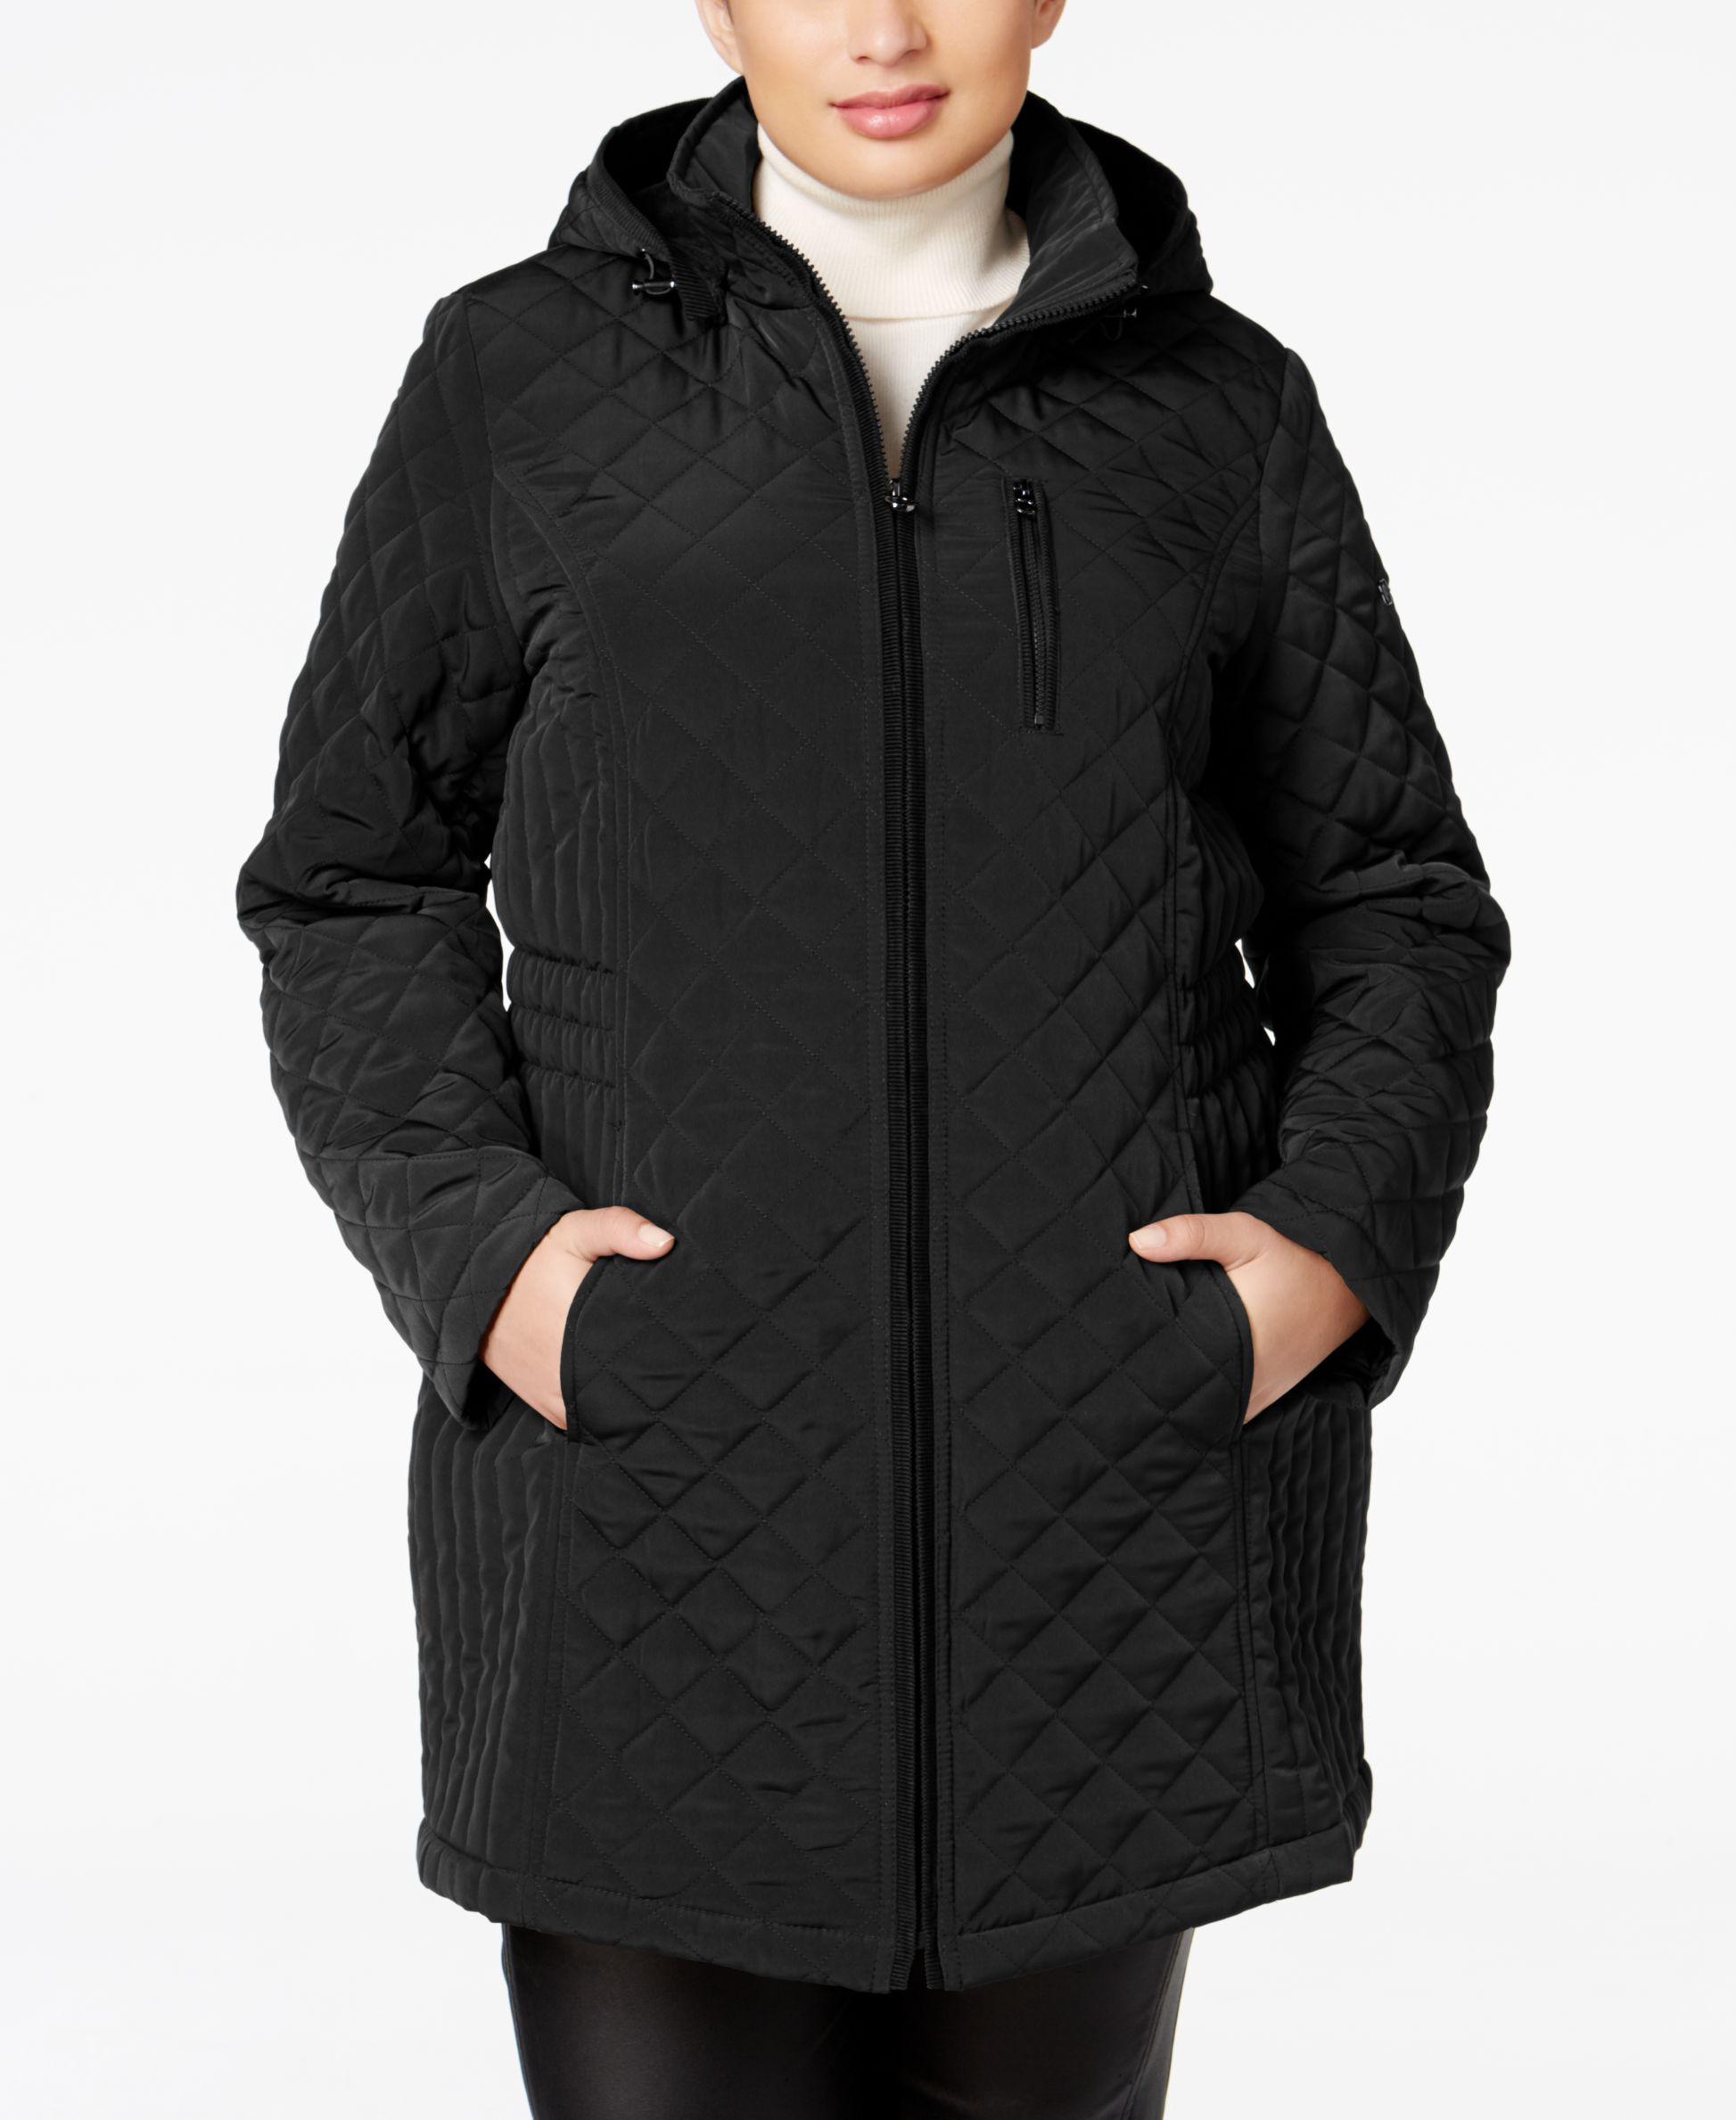 Laundry By Design Plus Size Hooded Quilted Jacket Quilted Jacket Jackets Coats For Women